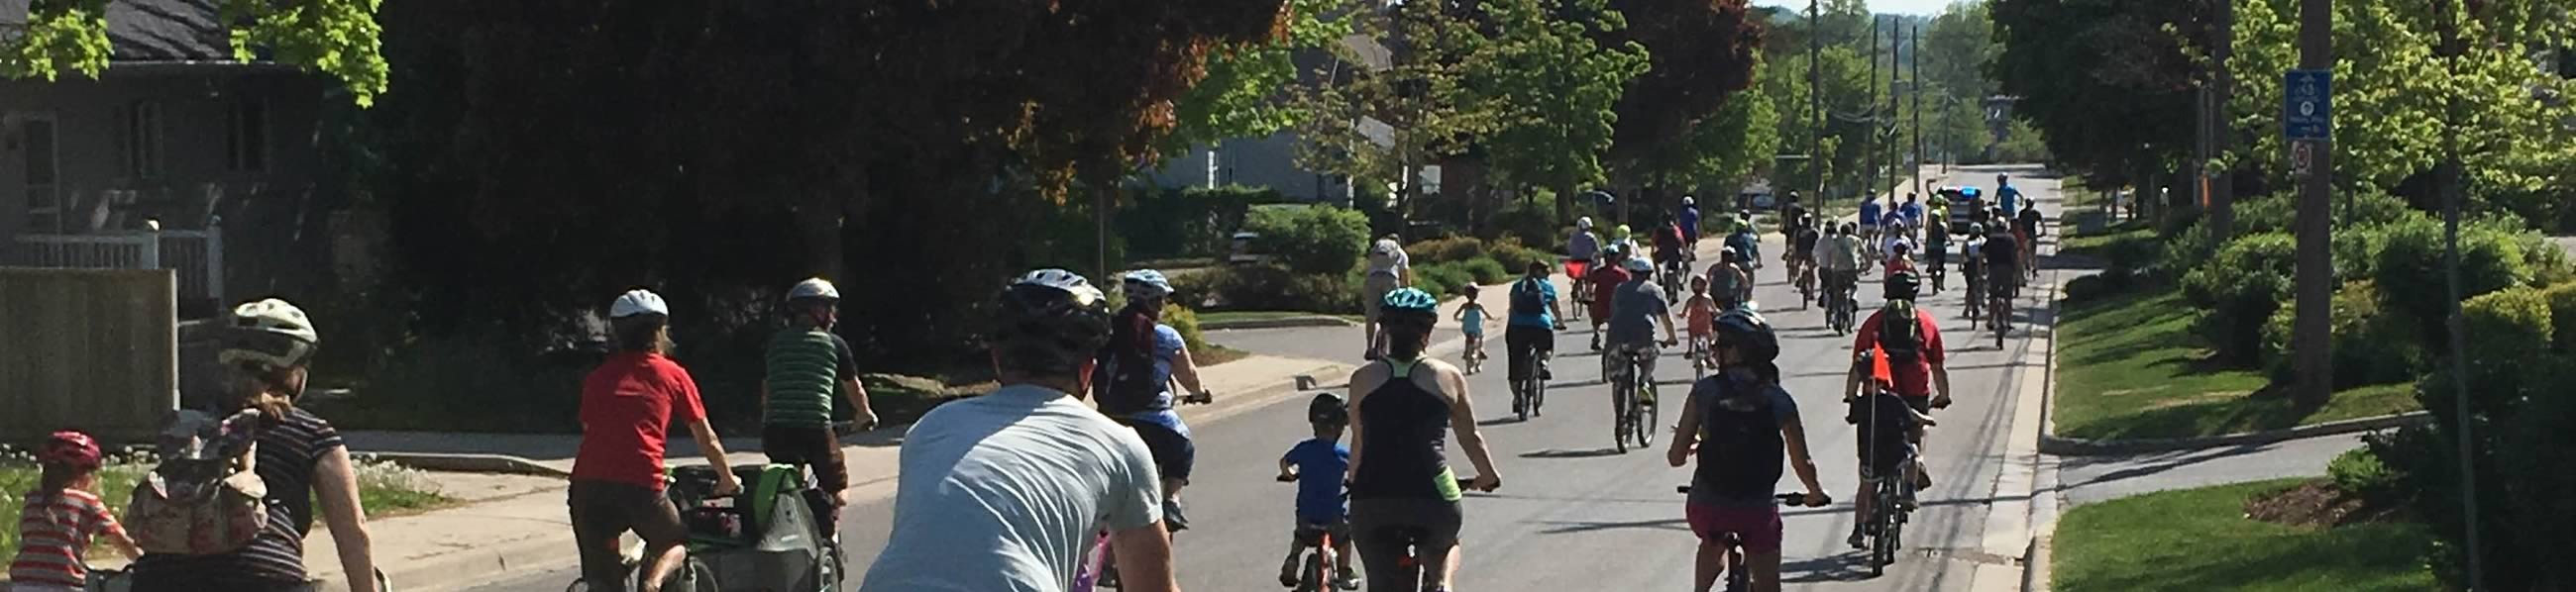 Community bike ride through a street in Orangeville